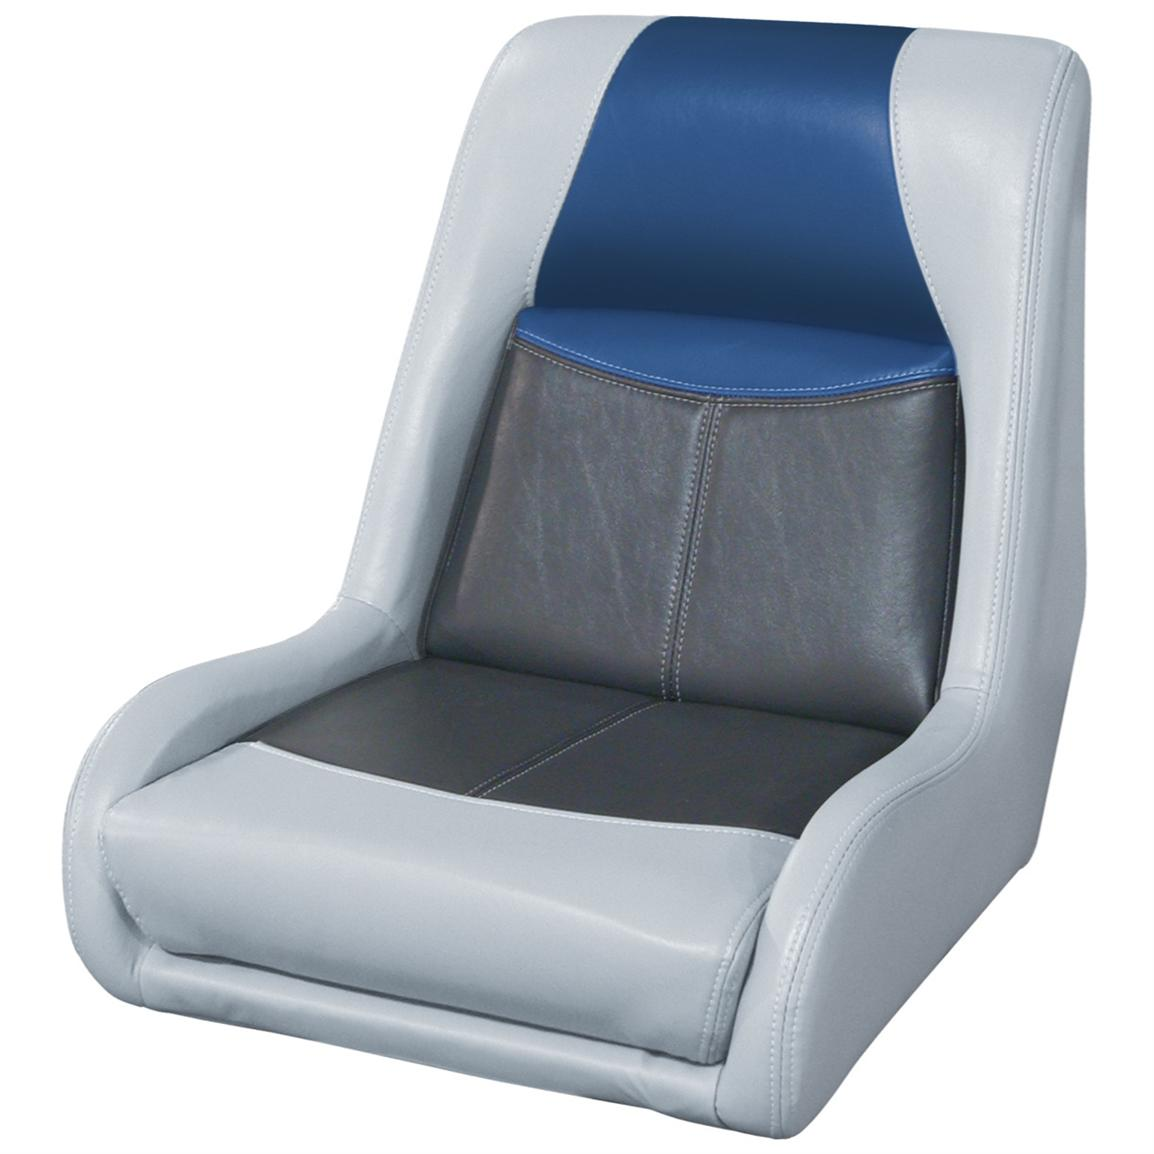 Wise® Blast-Off™ Series Swept Back Bass Bucket Seat, Grey / Charcoal / Blue